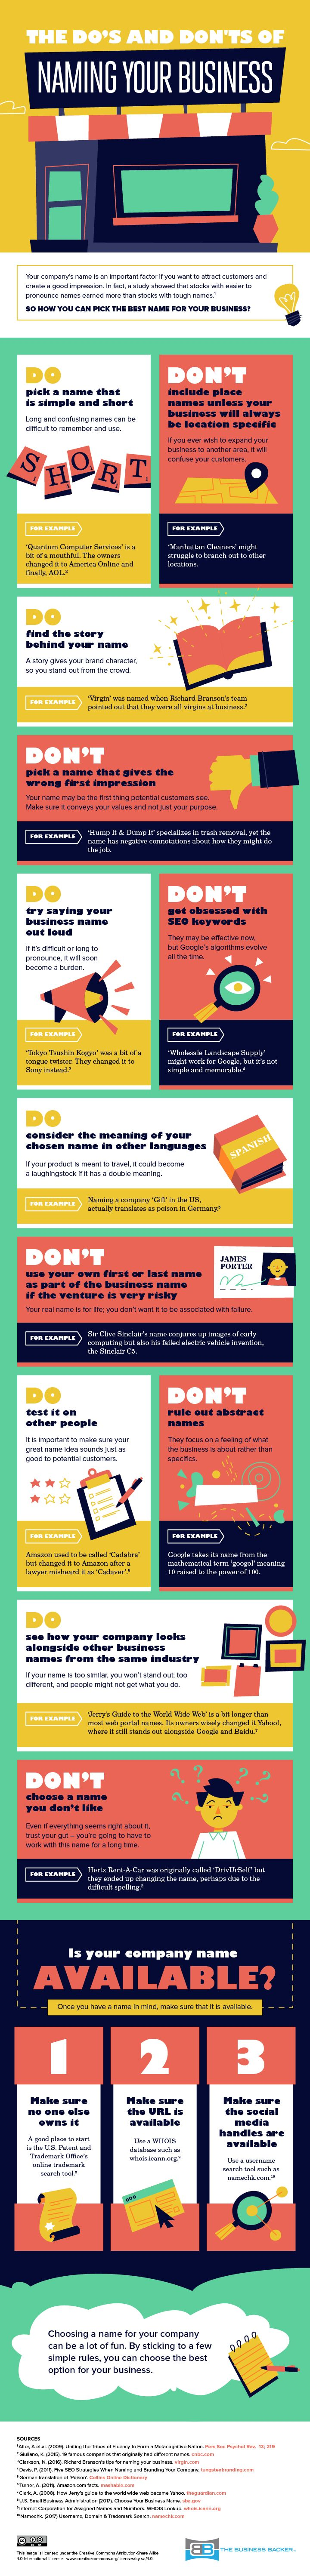 The Do's and Don'ts of Naming Your #Business #Infographic #SEO